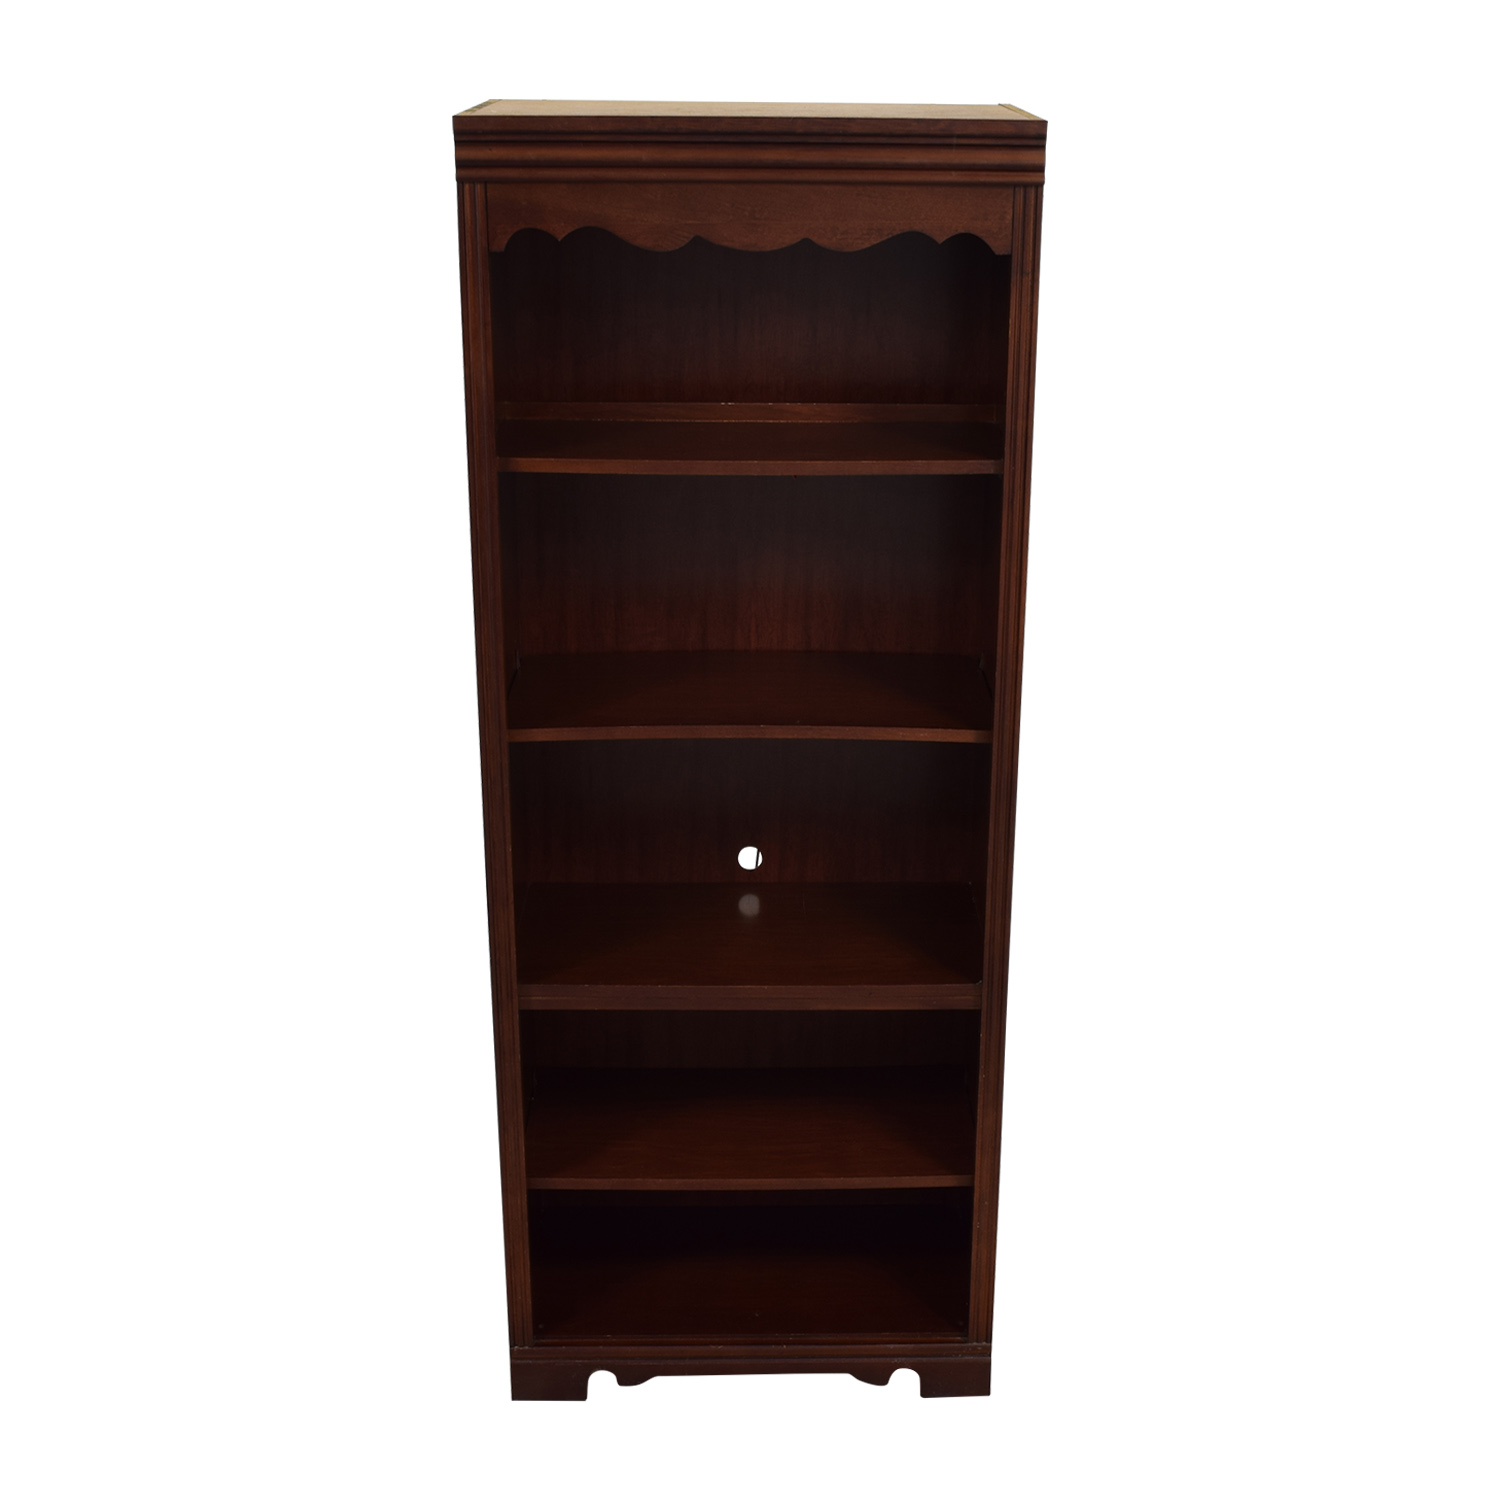 Broyhill Broyhill Dovetailed Trim Wood Bookshelf nyc